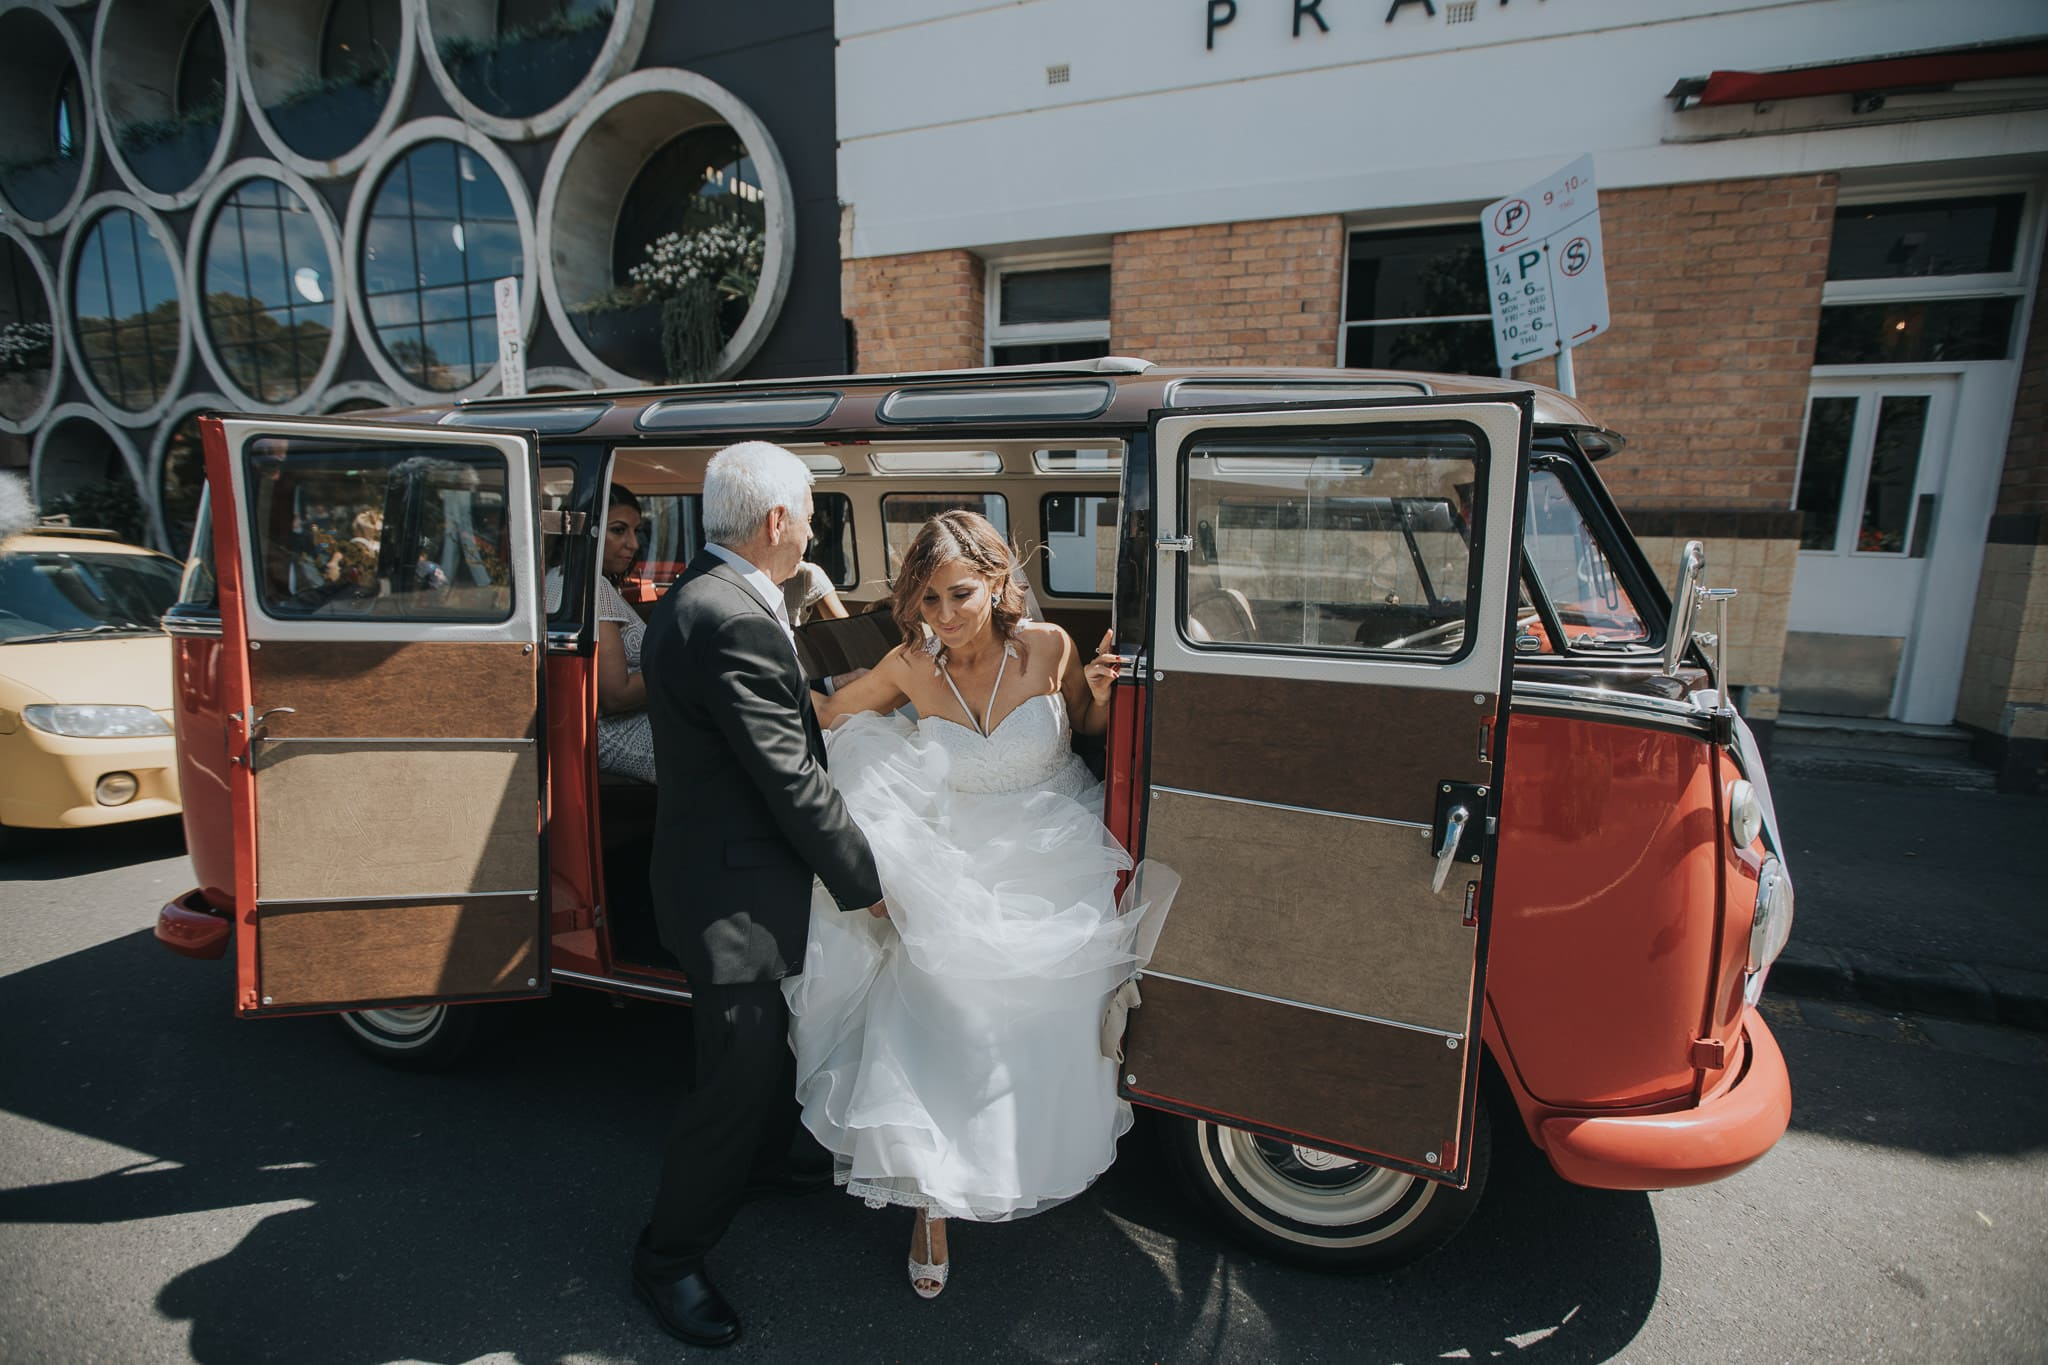 Bride gets out of the car - father helps the bride